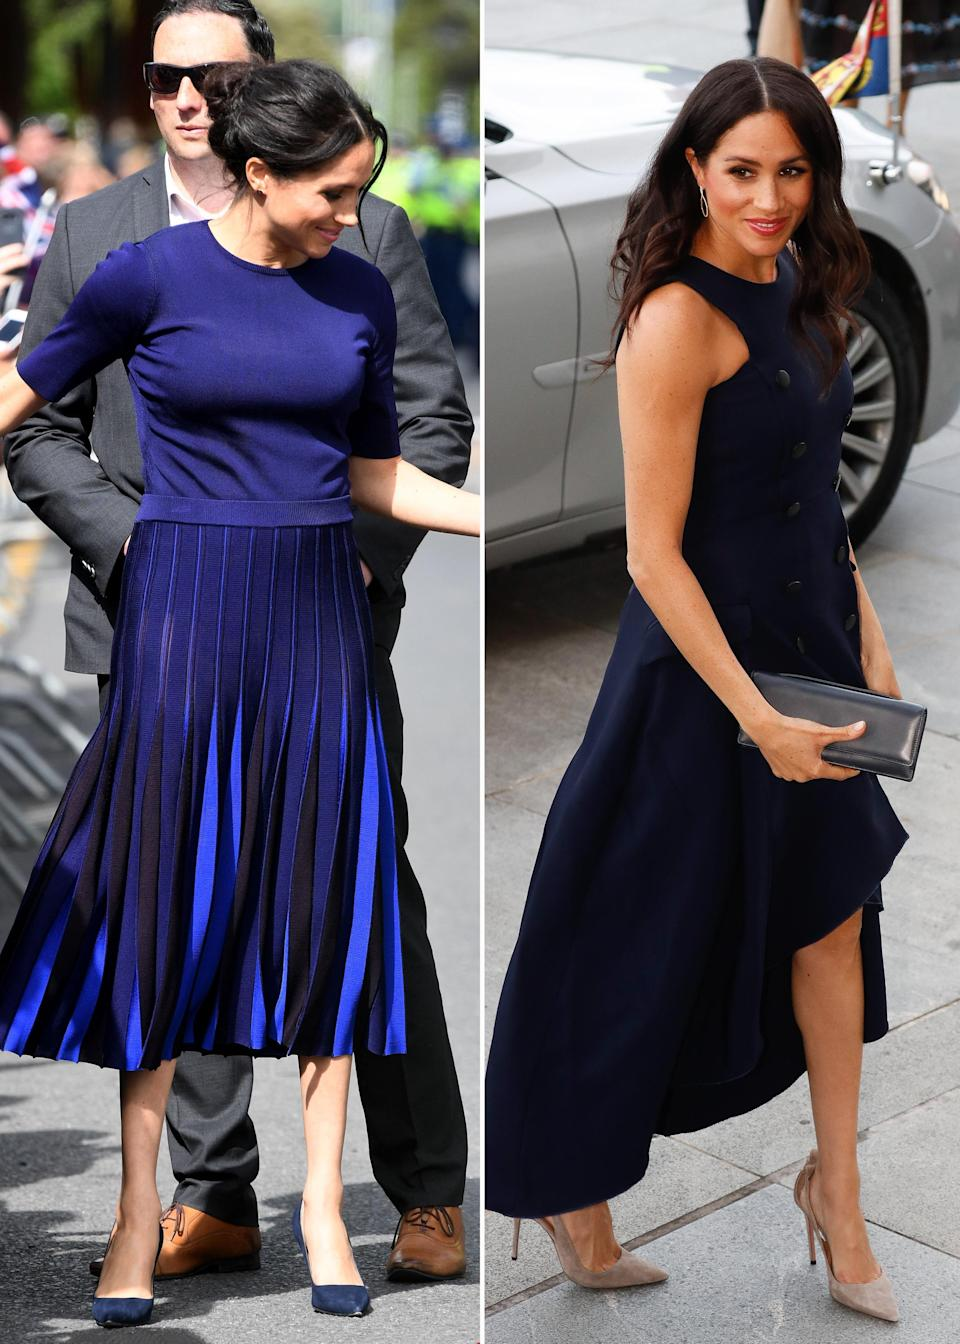 A couple of Meghan's outfits during her recent royal tour, the one on the left was criticised for having a semi-transparent skirt. Photo: Getty